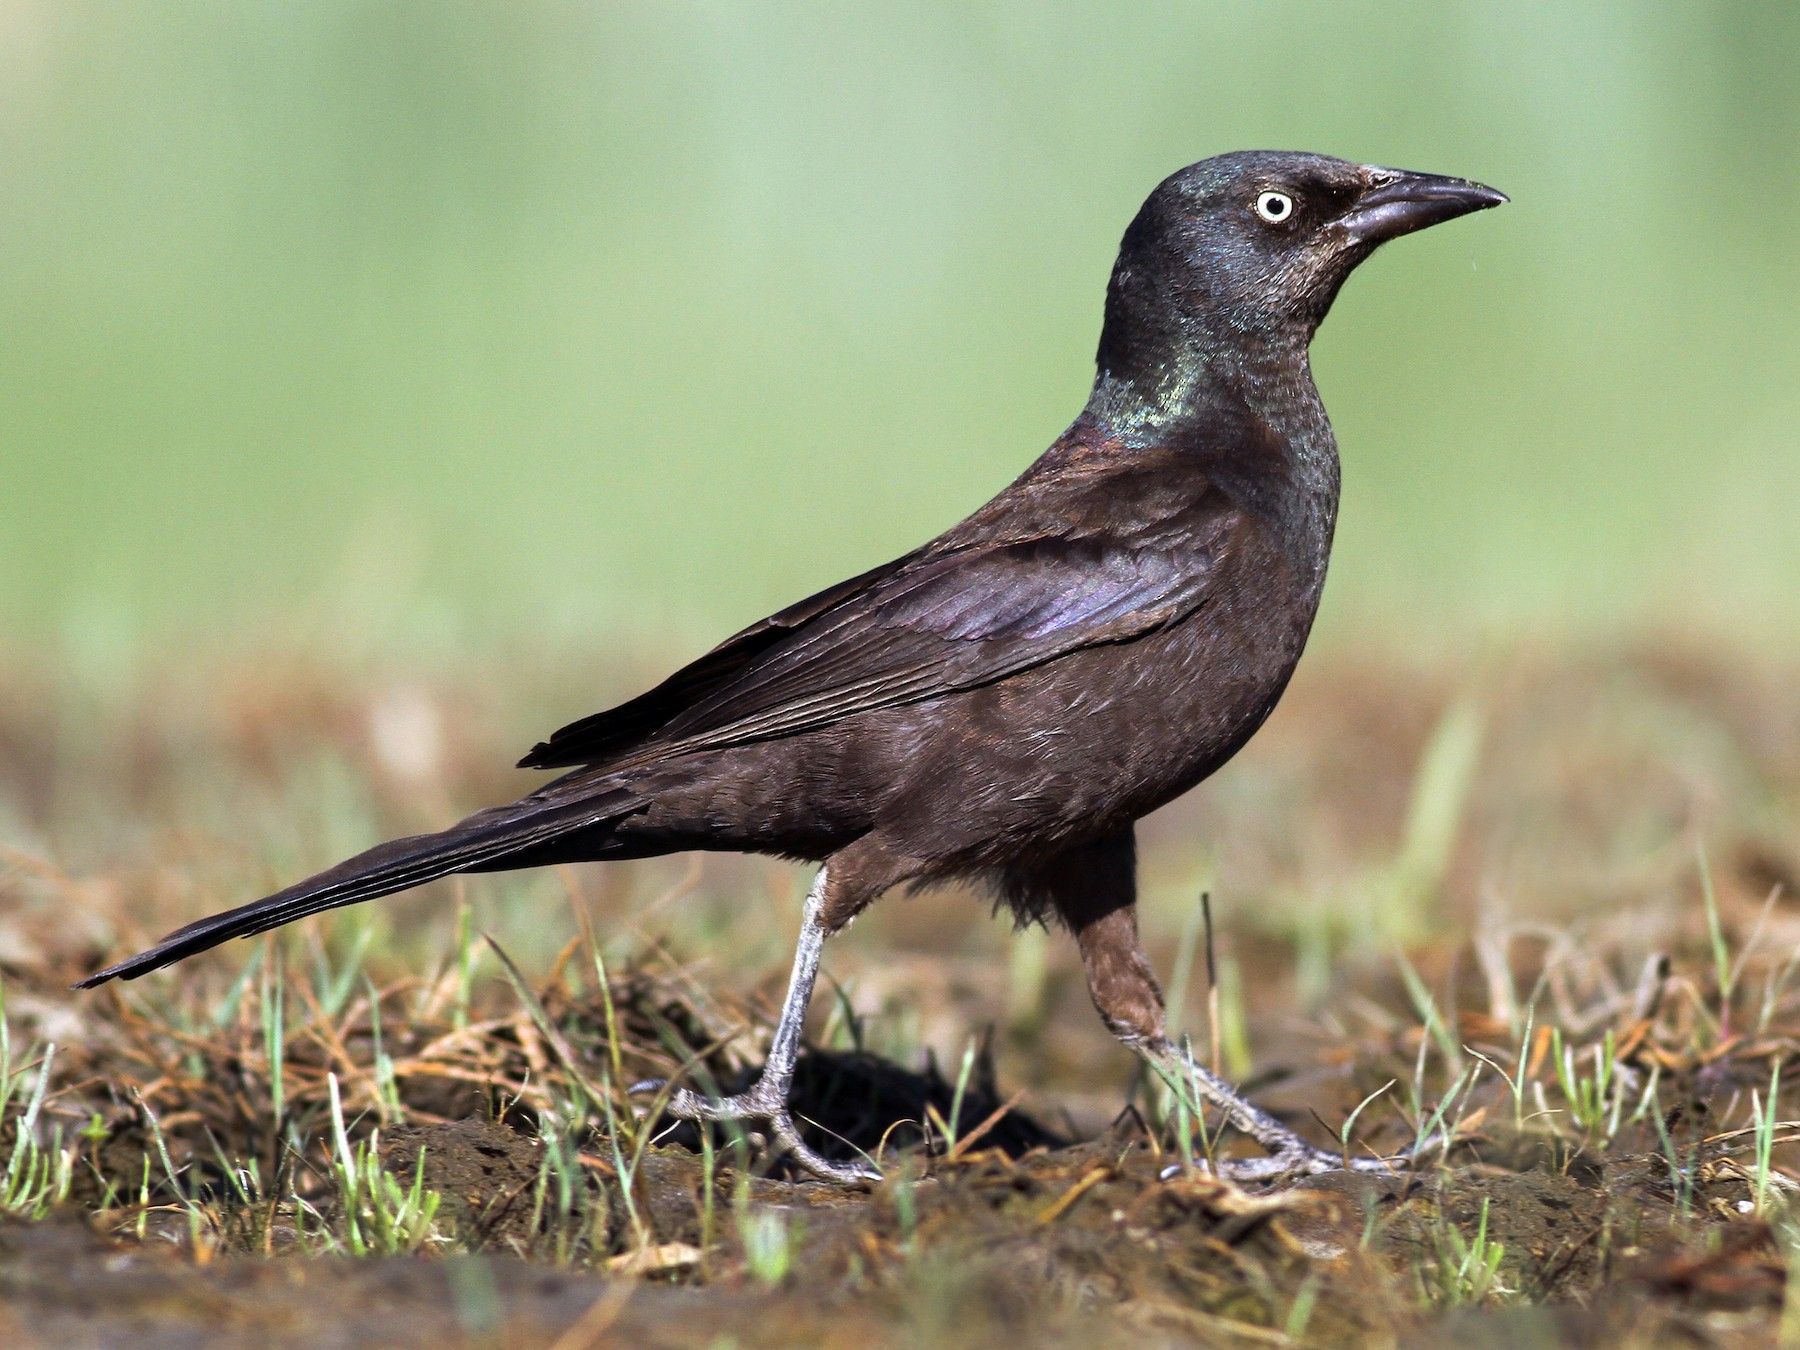 Common Grackle - Evan Lipton